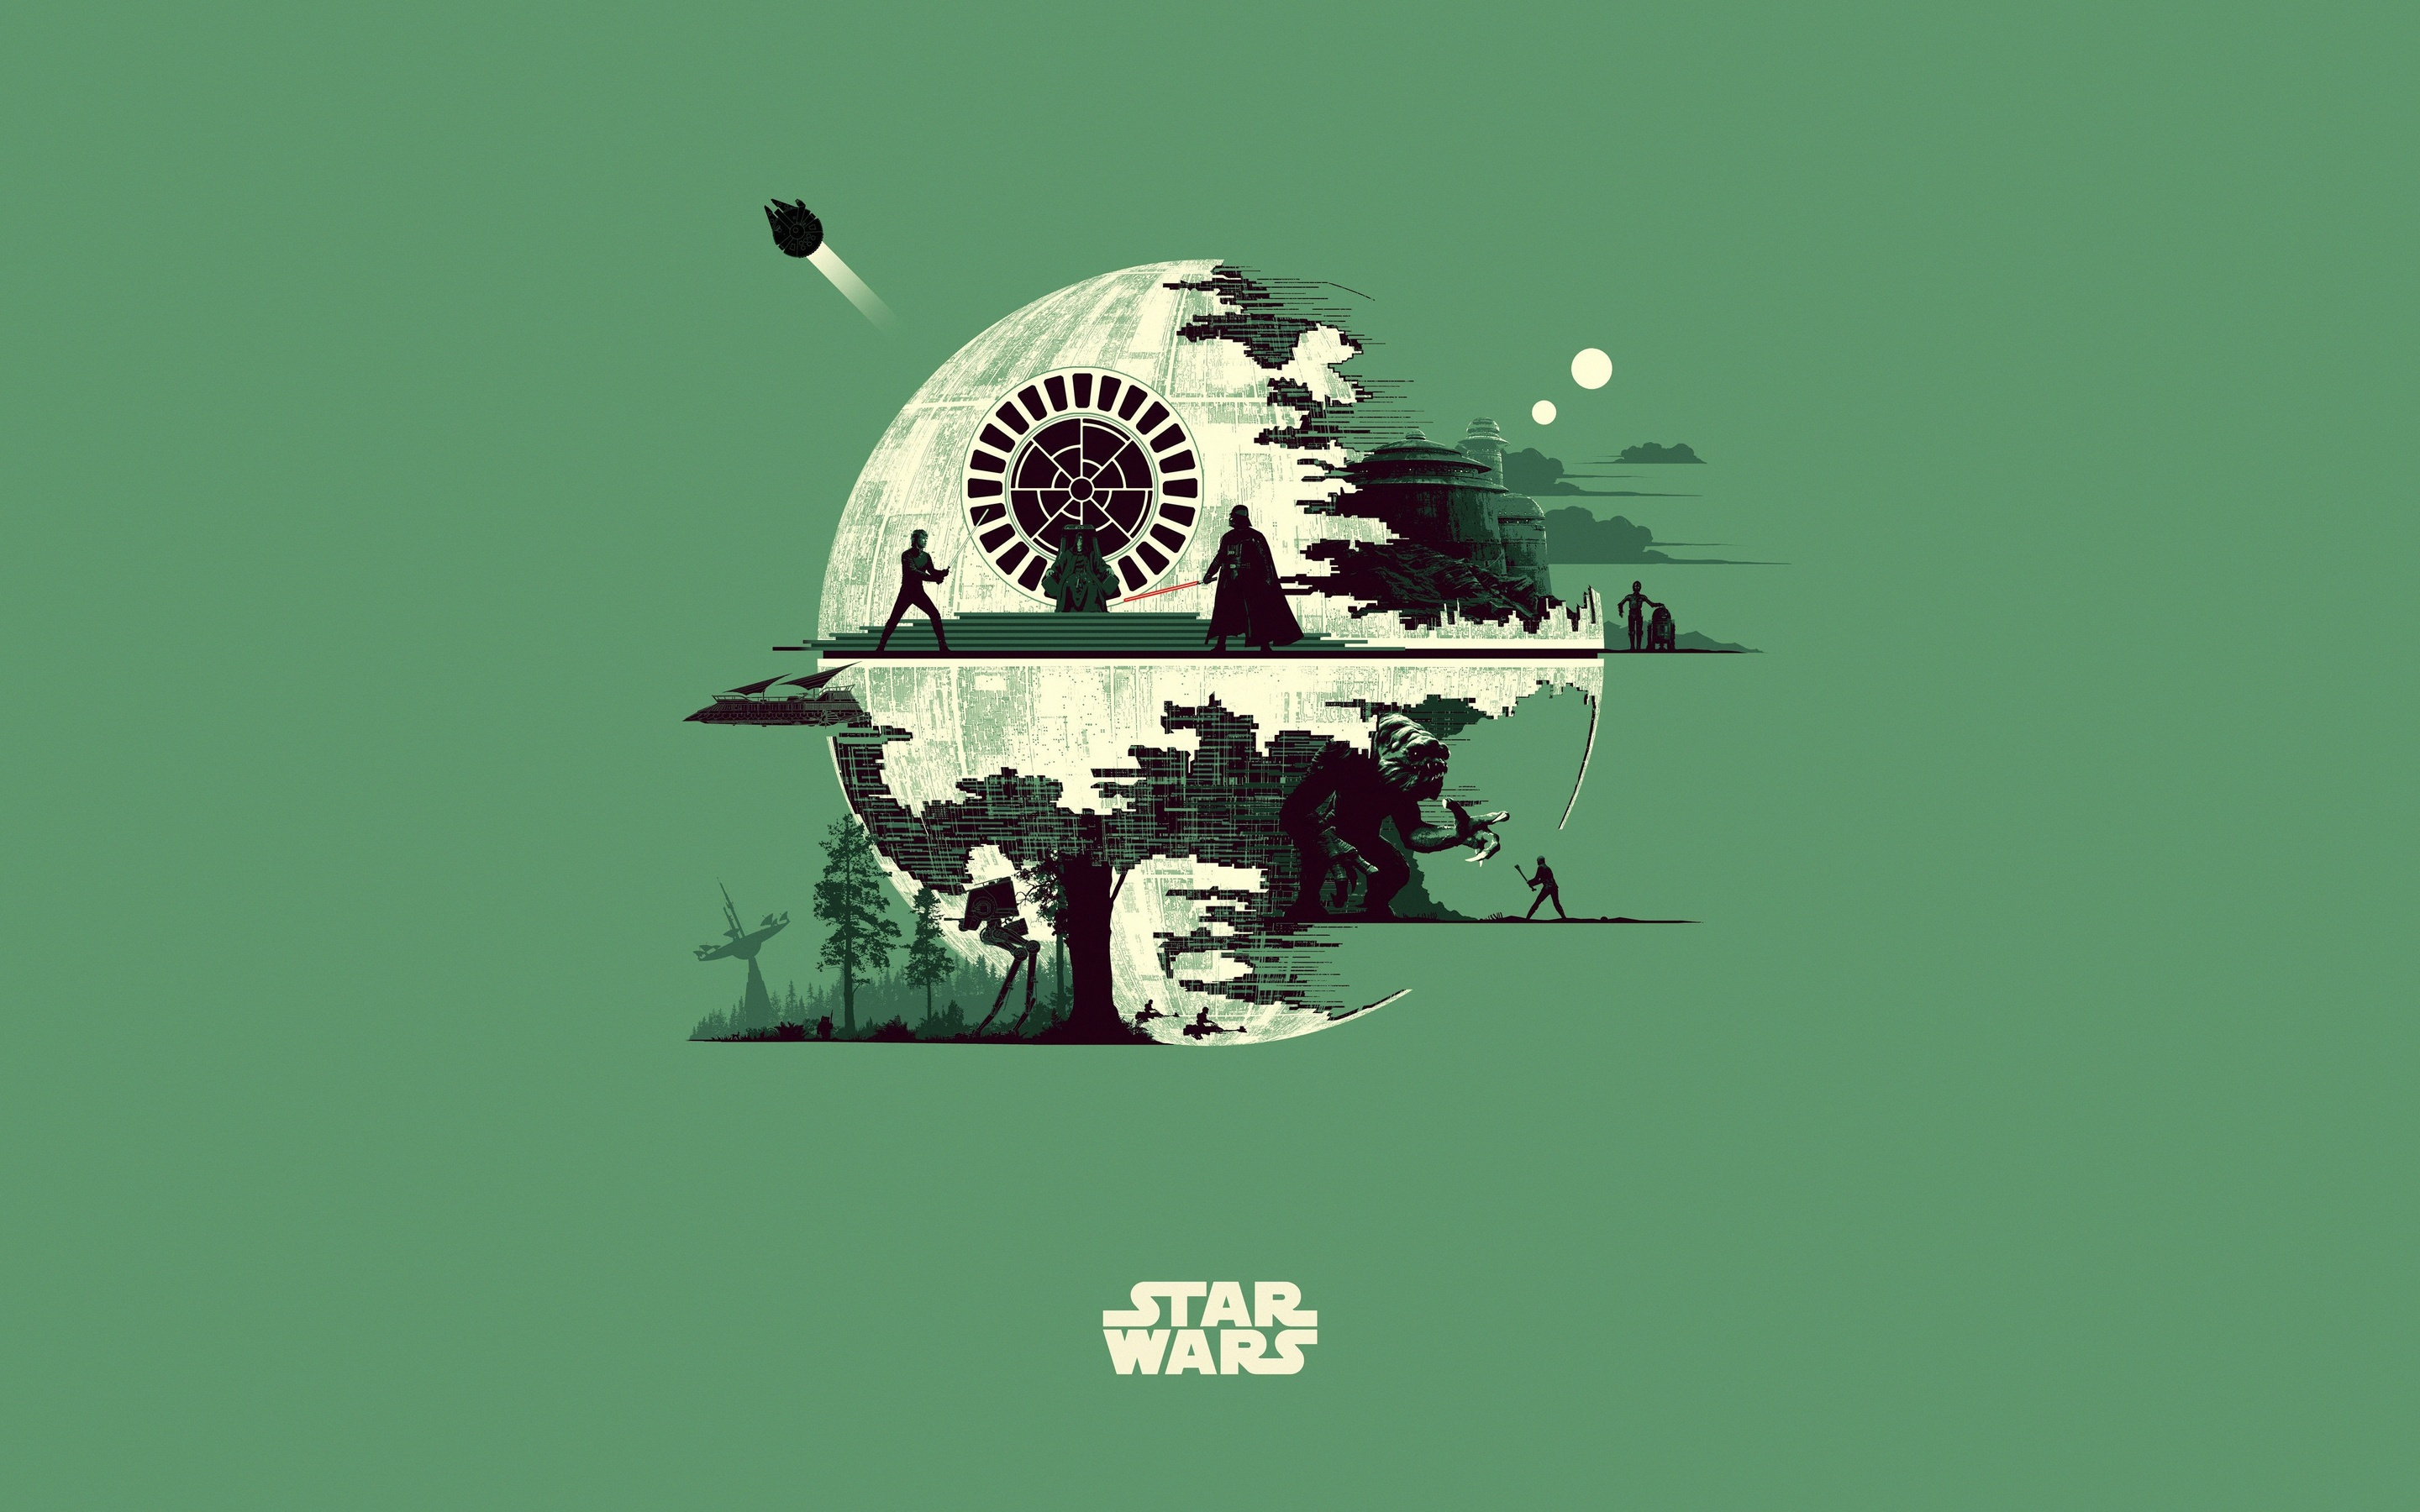 star wars minimalism artwork 5k bo